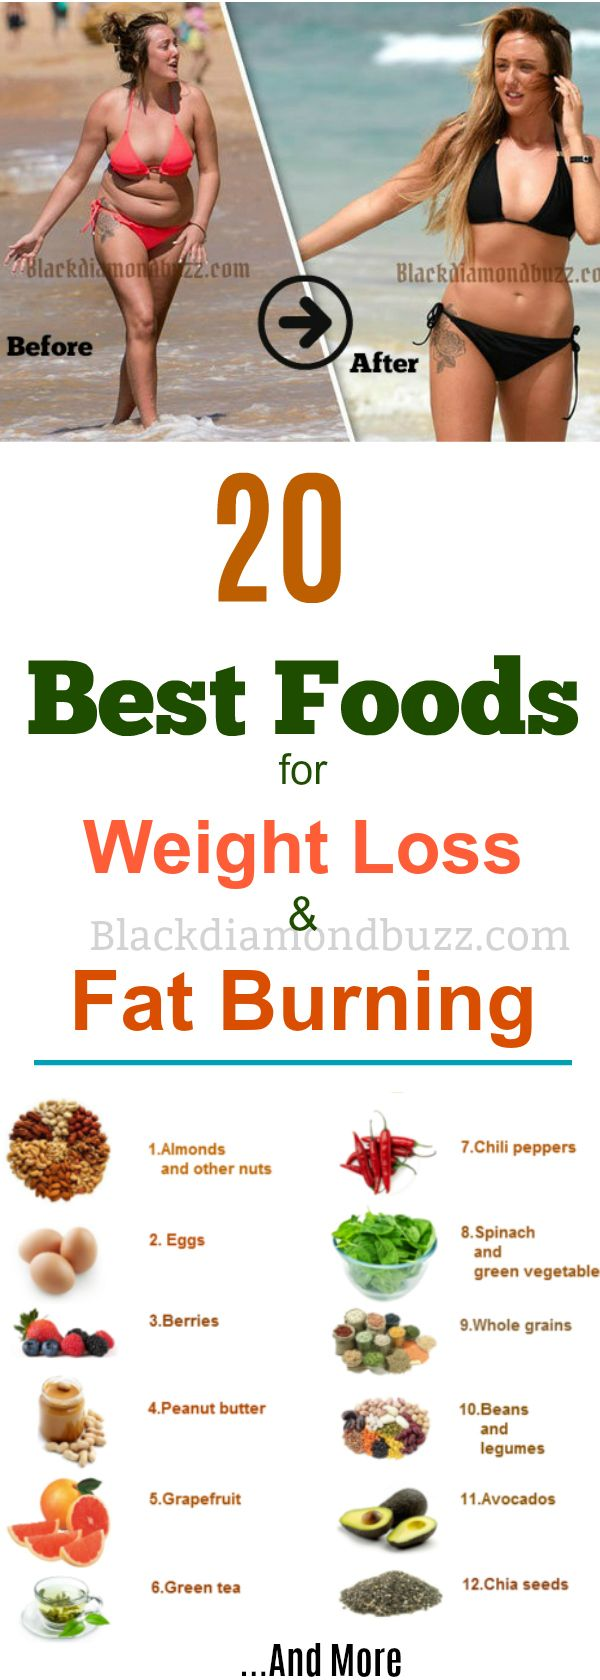 Fat Burning Foods For Weight Loss